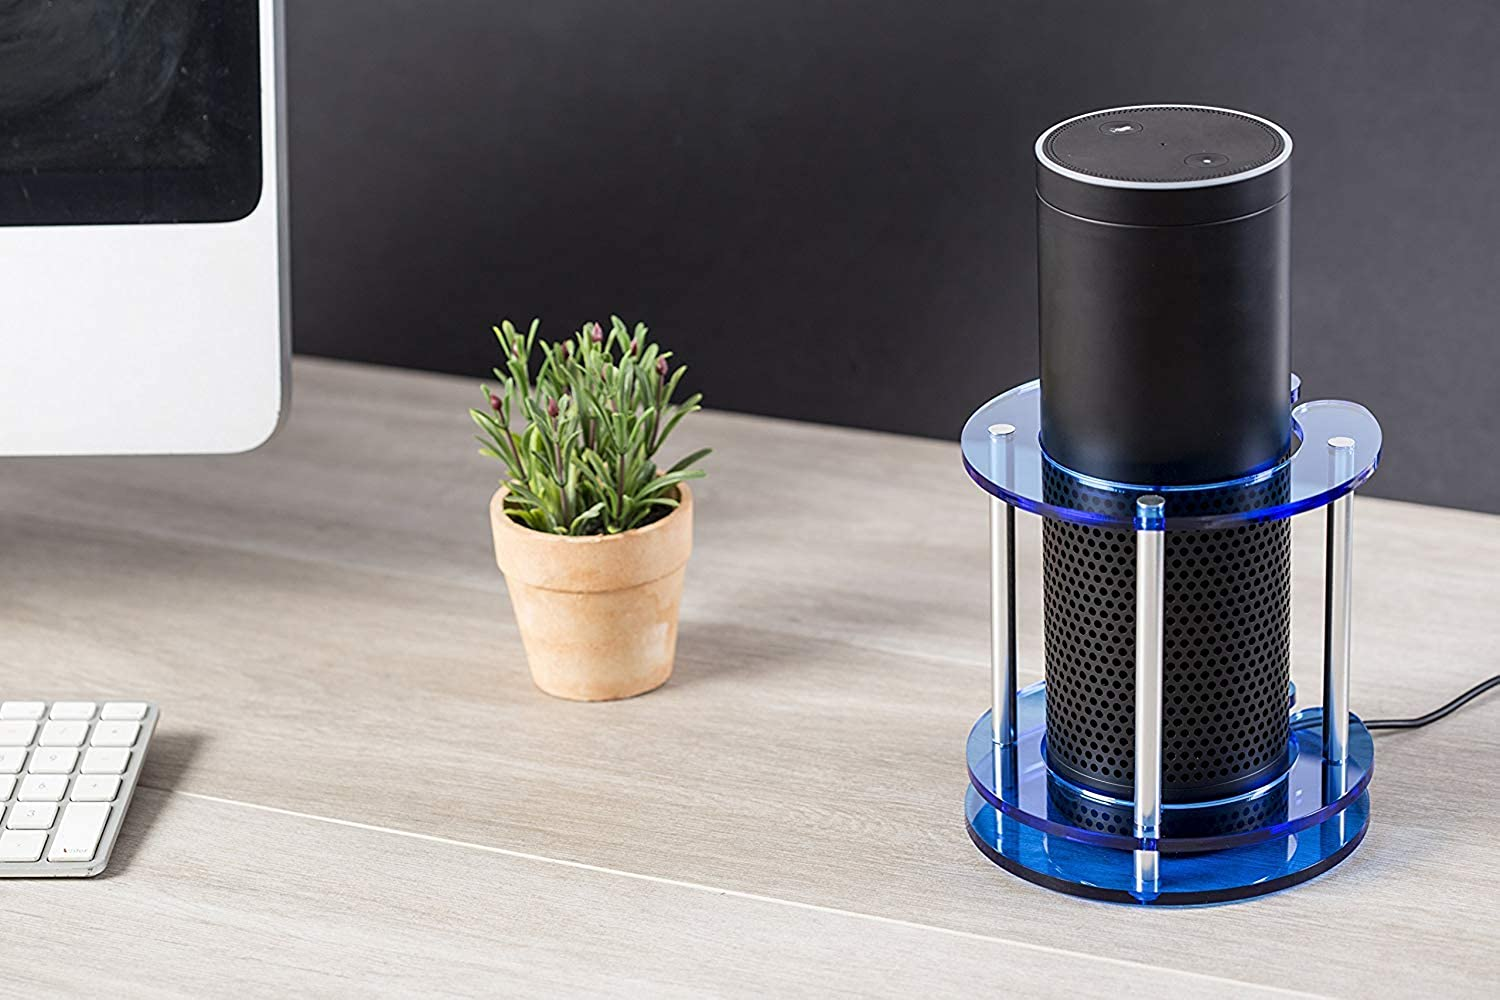 Acrylic Speaker Stand for Amazon Echo, UE Boom and Other Models - Predect and Stabilize Alexa by Wasserstein (bluee)